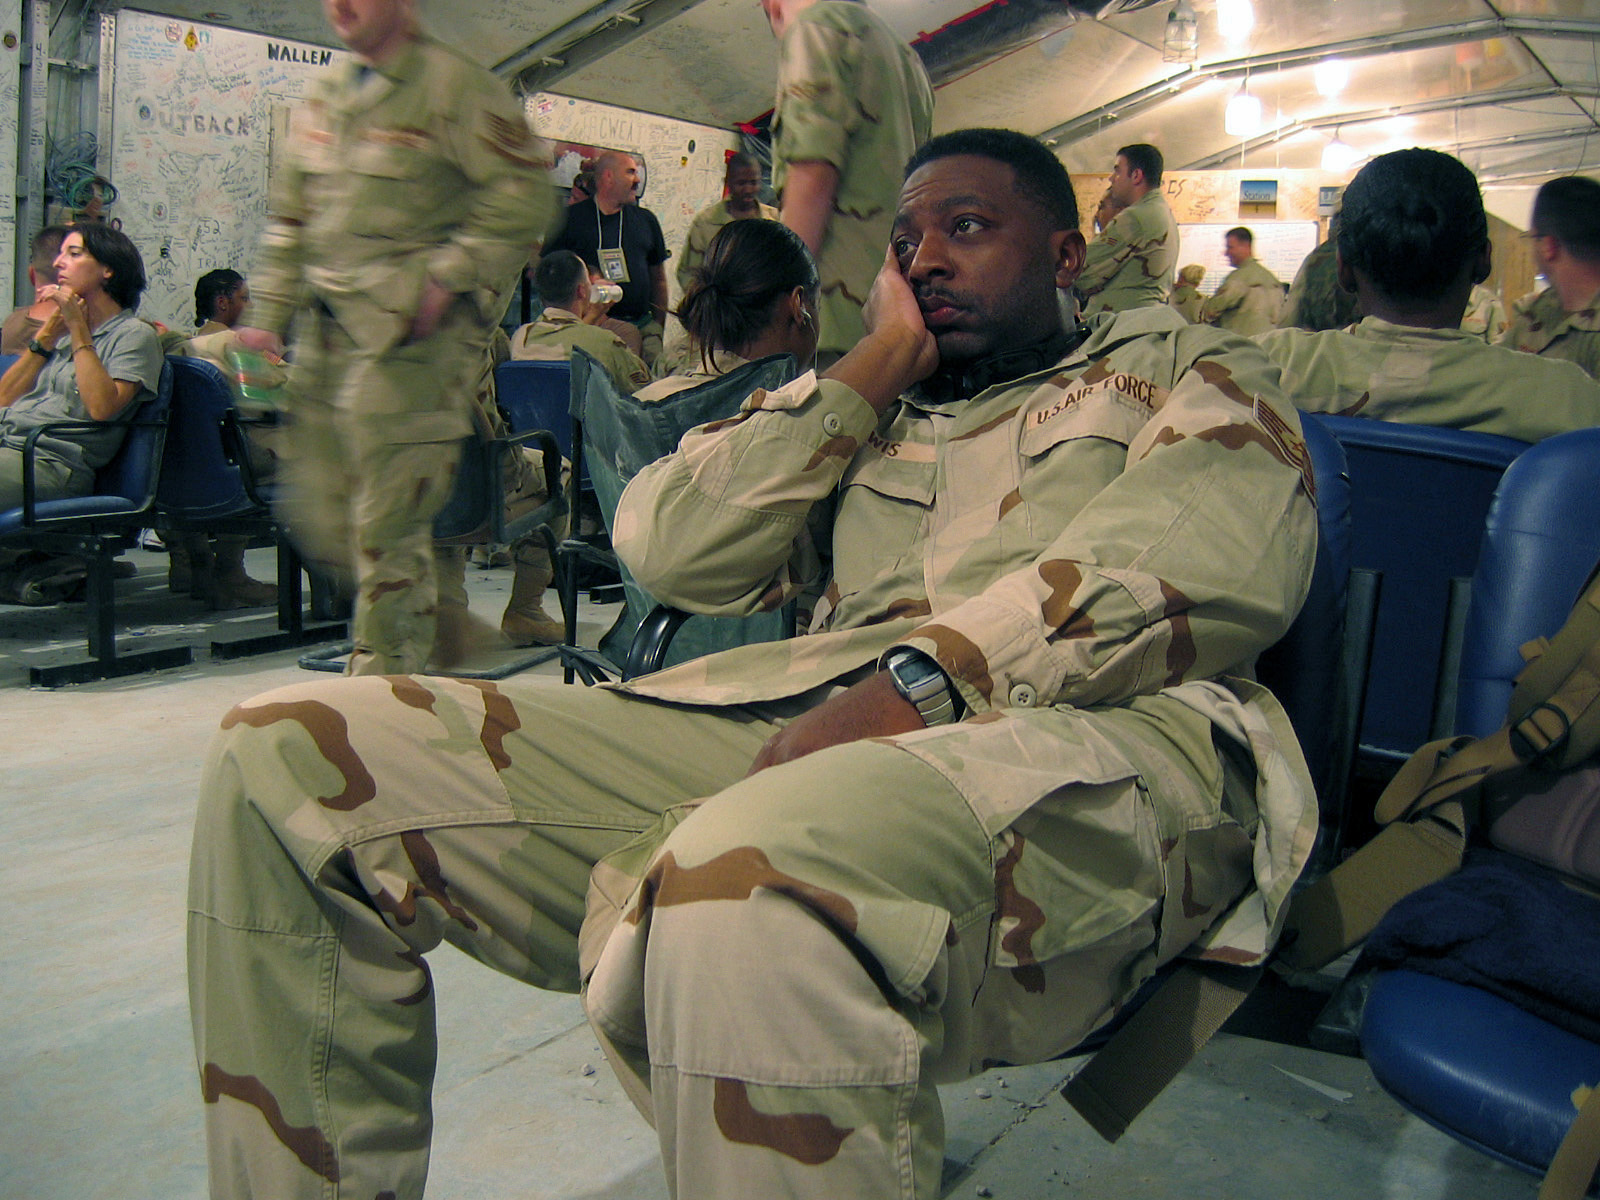 U.S. Air Force Technical Sergeant Marshall Lewis, Graphics Journeyman, Moody Air Force Base, Ga., part of a 5 airman Multimedia Team, patiently awaits a flight to Balad Air Base, Iraq, in the Passenger Terminal at Al Udeid Air Base, Qatar. (U.S. Air Force PHOTO by AIRMAN First Class Joshua T. Jasper)